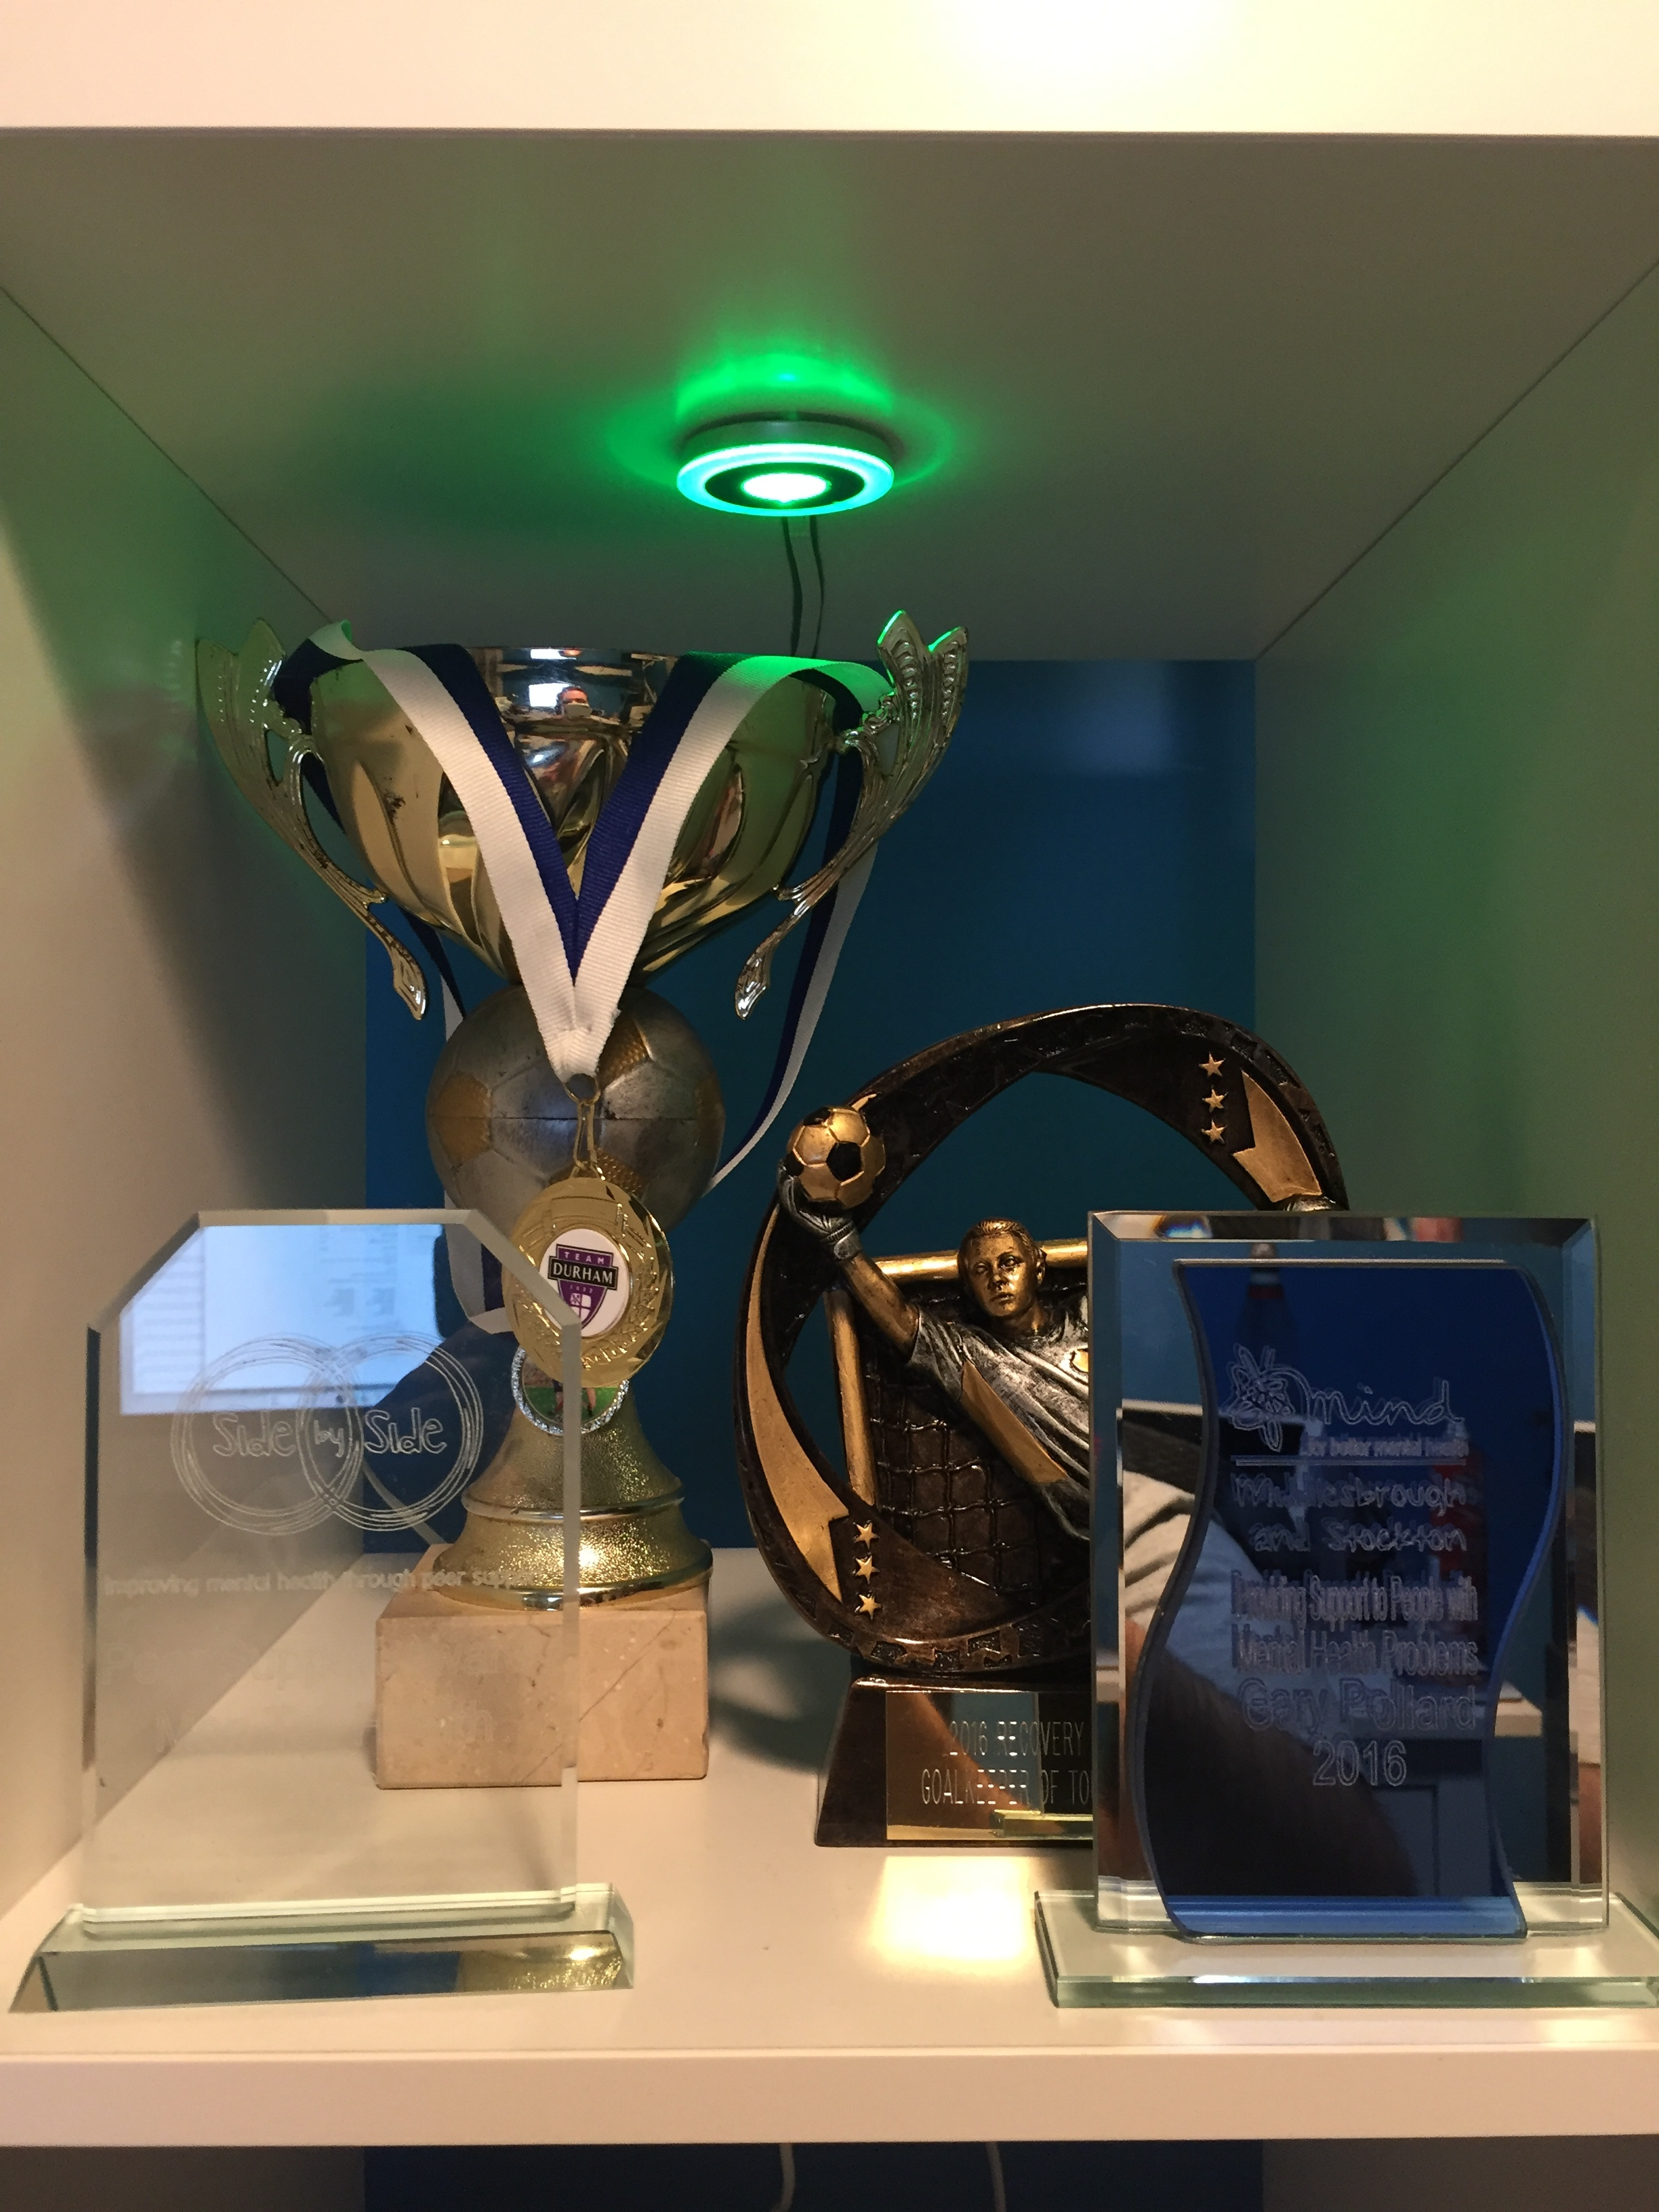 Trophy cabinet starting to look pretty full!